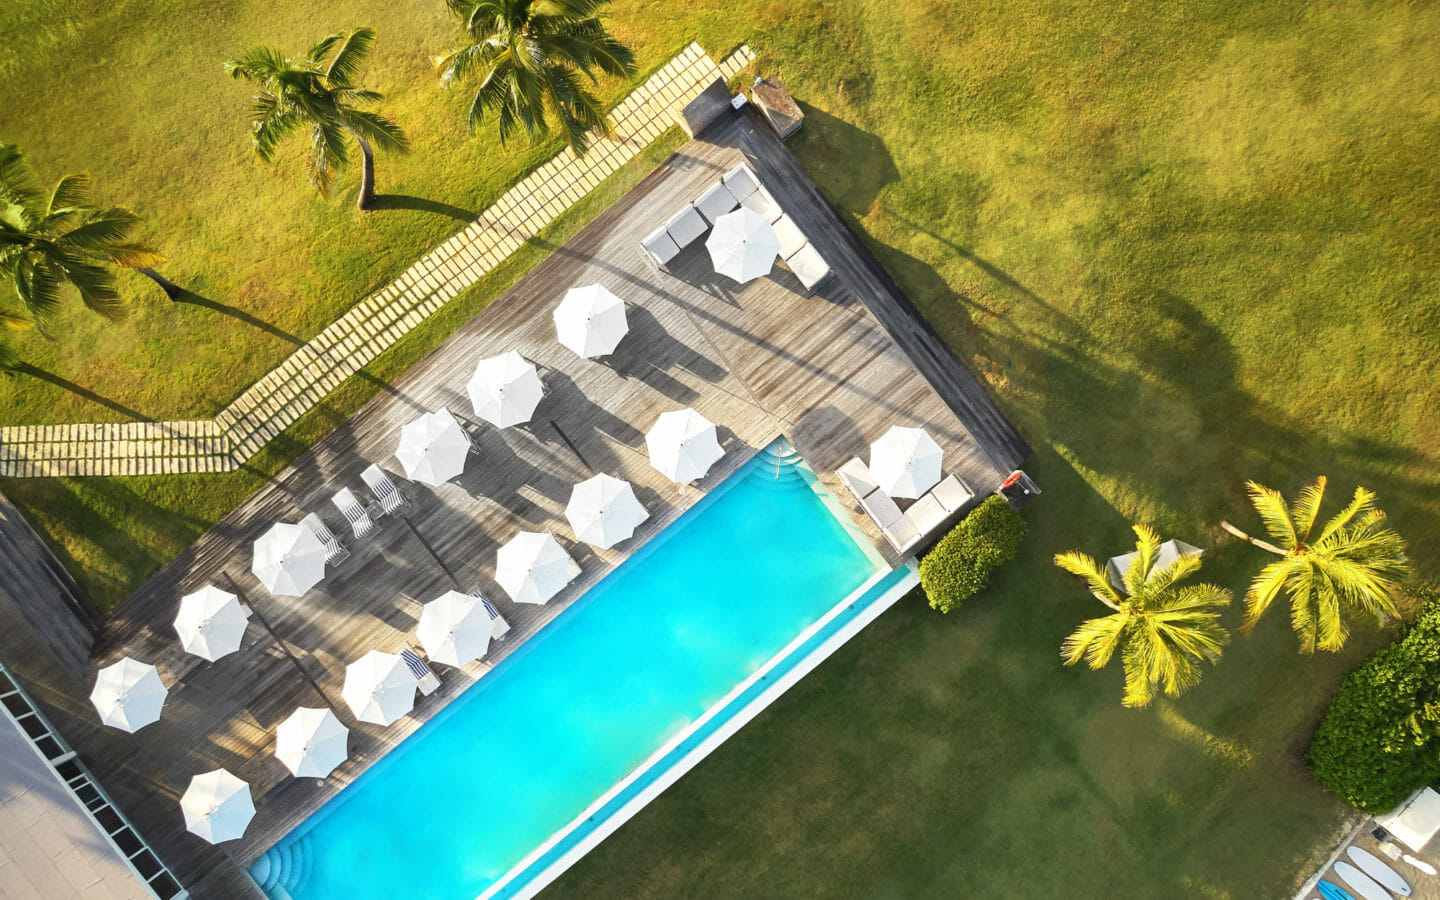 Aerial photo of pool and deck with chairs and umbrellas